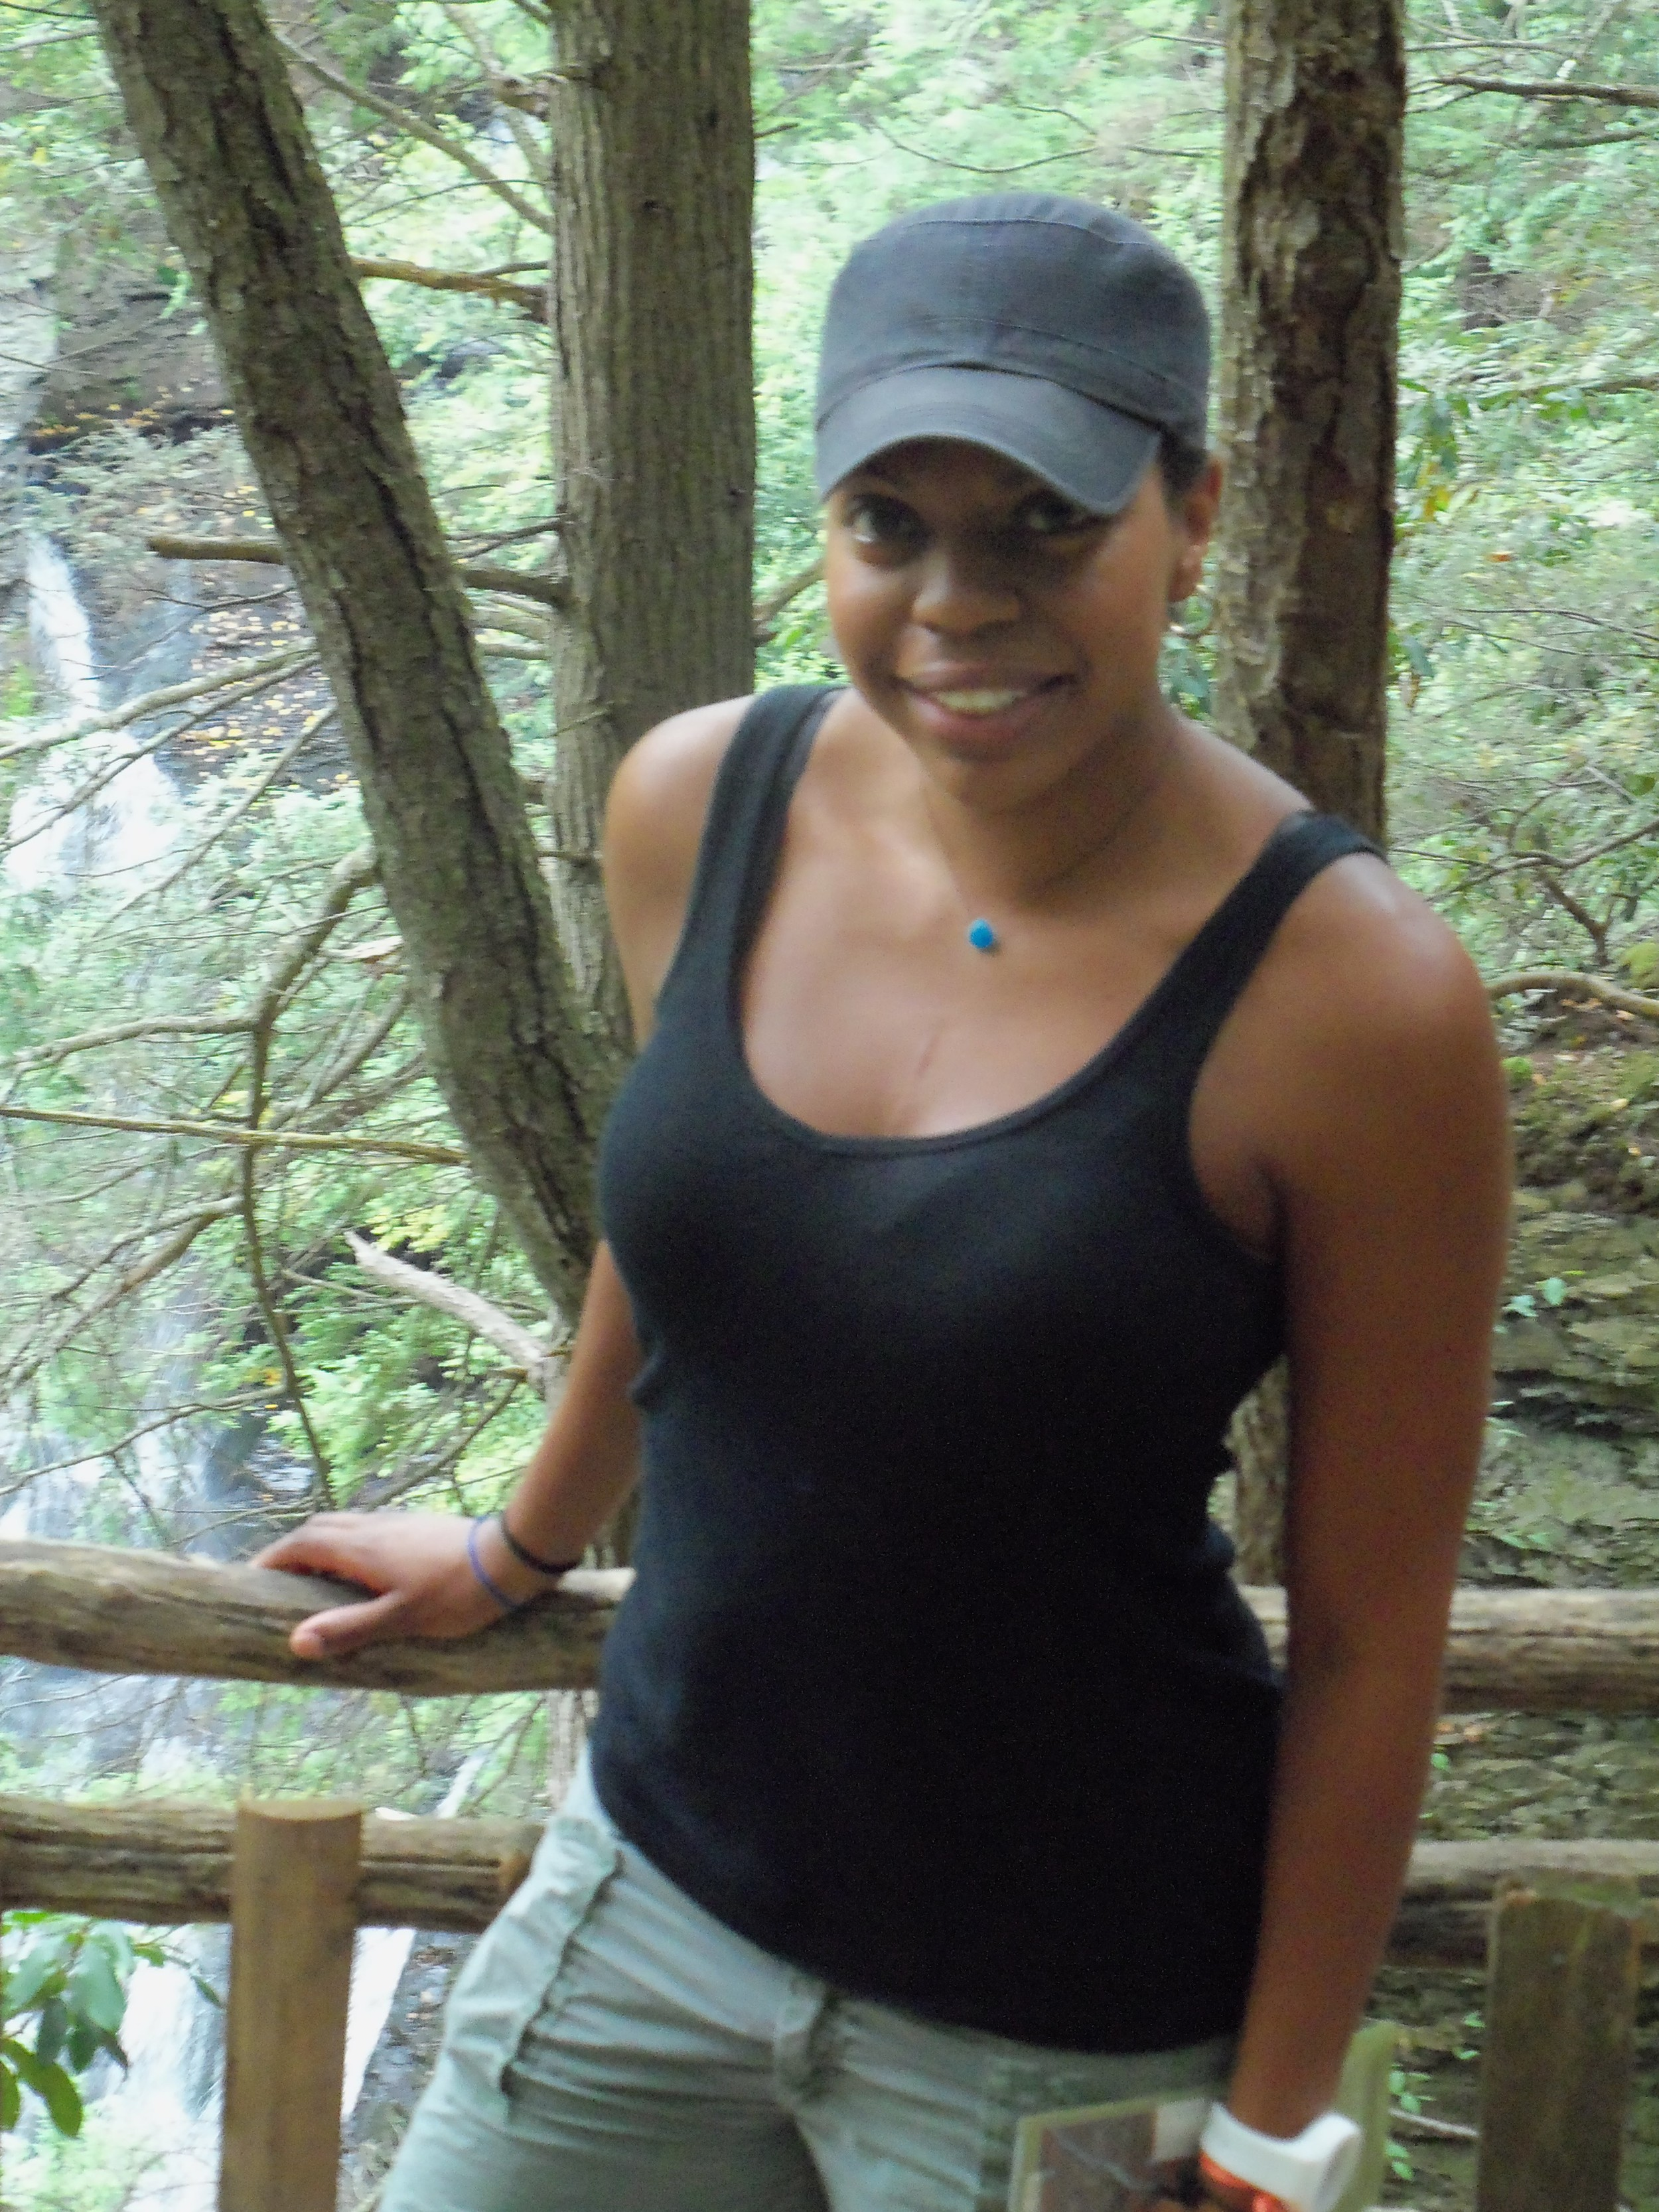 I explored new forms of fitness like hiking!